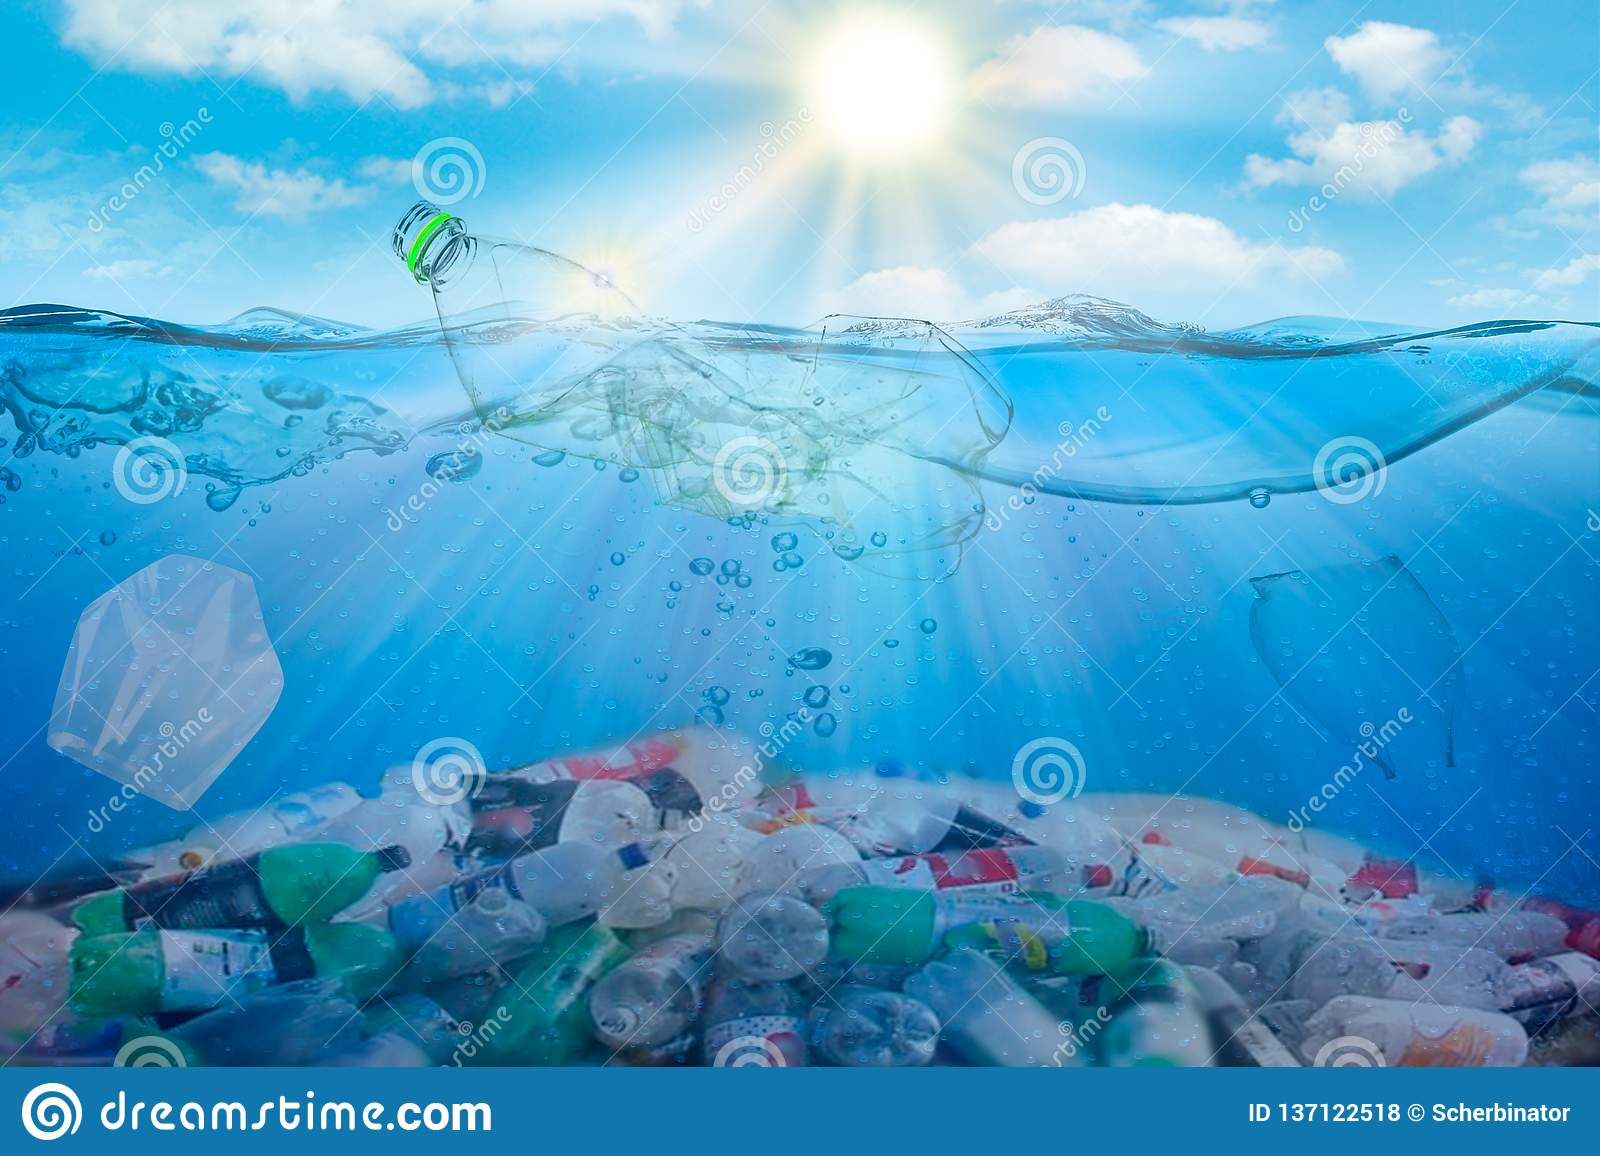 water pollution environmental. plastic. save ecology concept